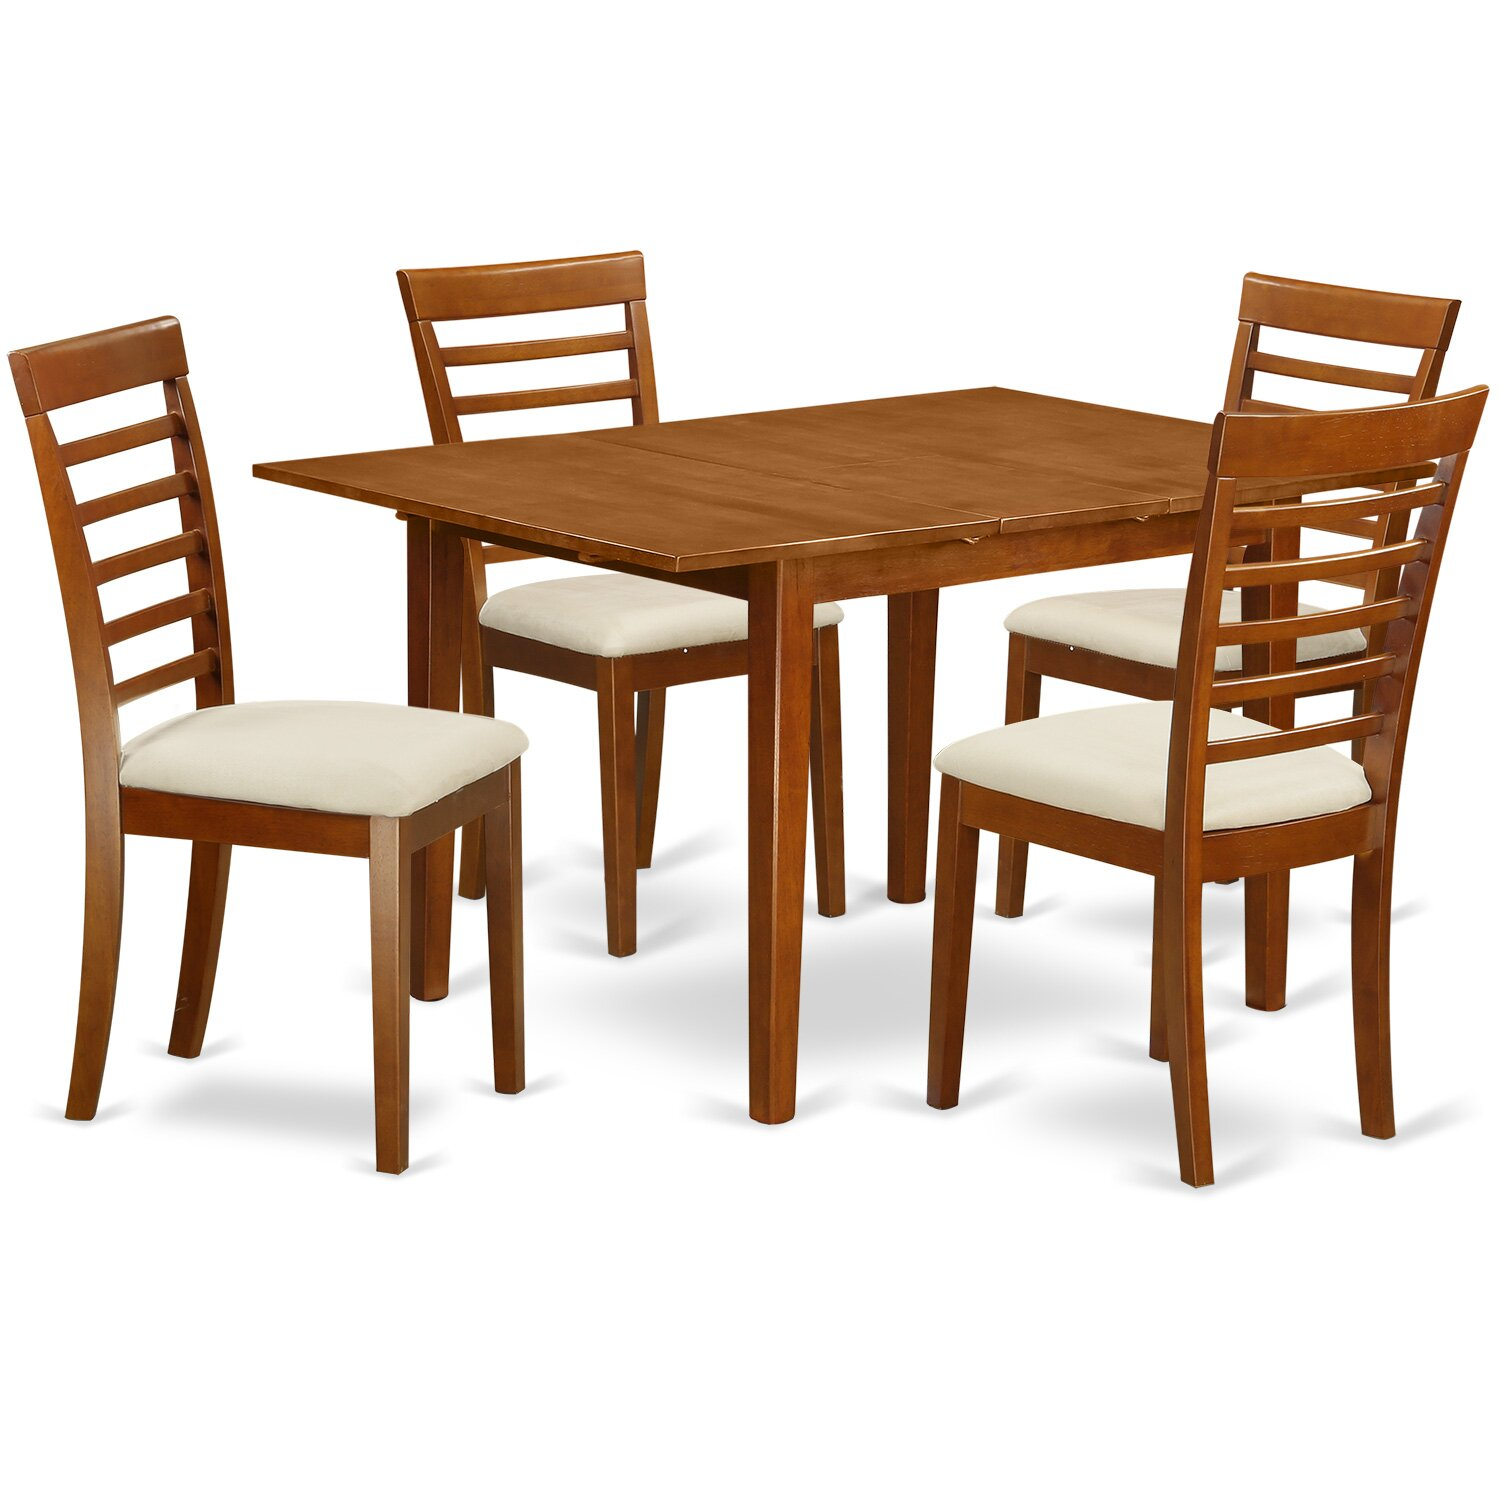 East west milan 5 piece dining set wayfair for Small kitchen table sets for 4